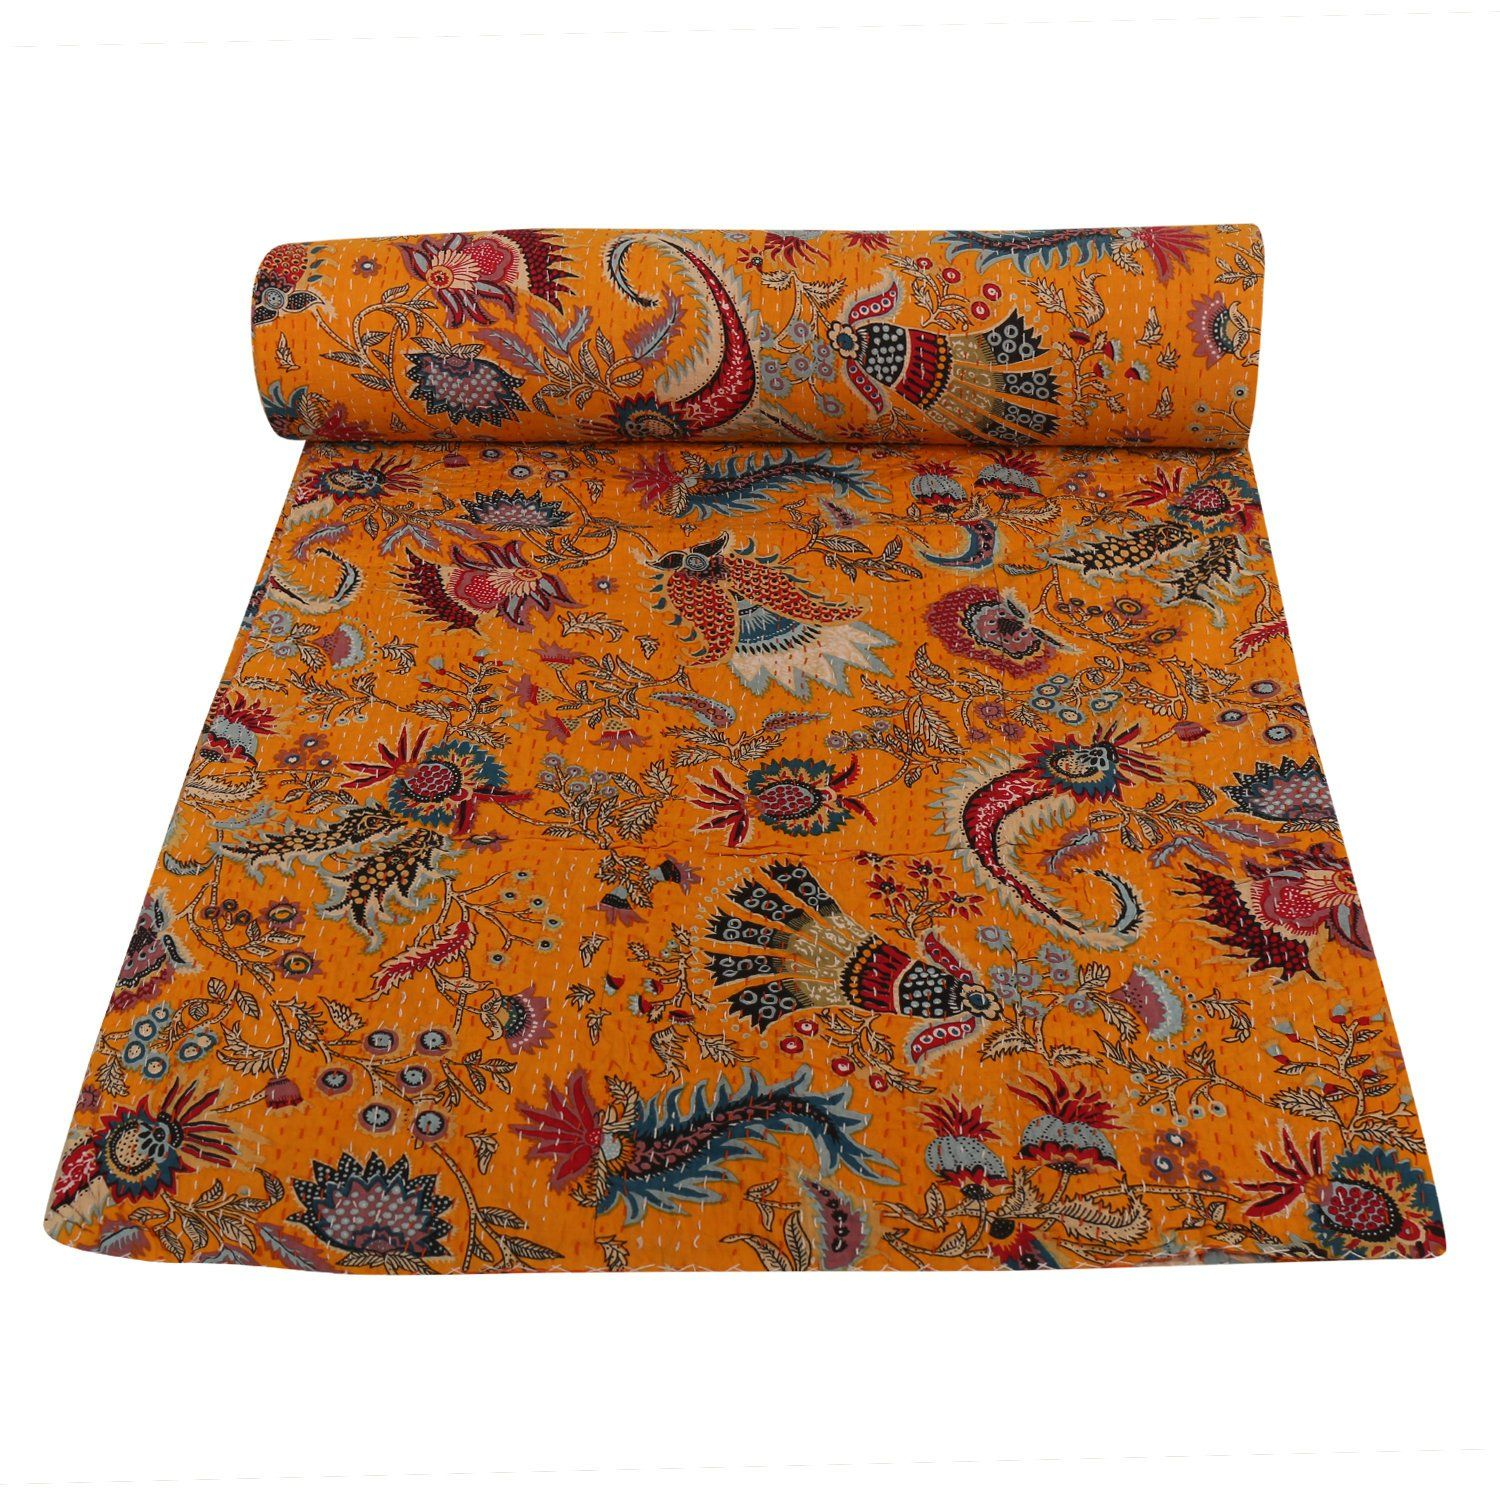 floral yellow kantha quilts bedspreads,kantha throw home decor beautiful bedding coverlet size multi